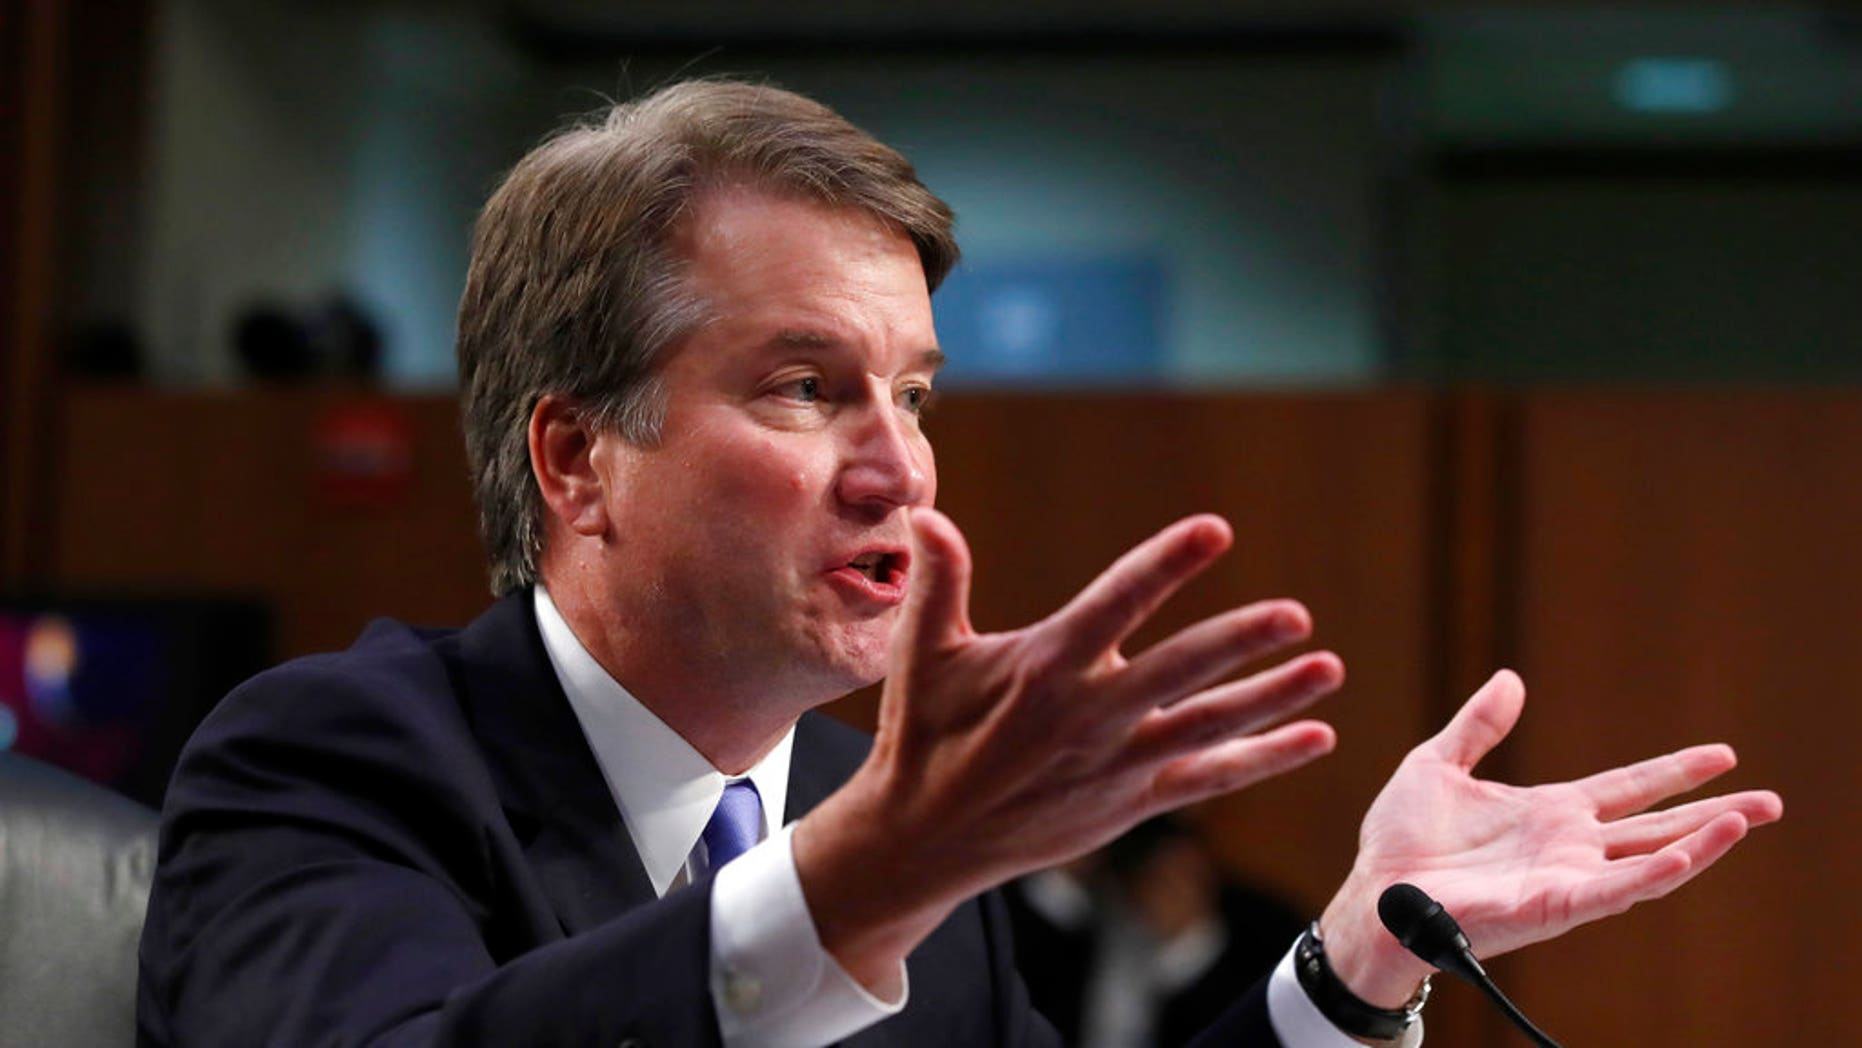 Supreme Court nominee Brett Kavanaugh was questioned Thursday over an alleged sexual assault involving Christine Blasey Ford.